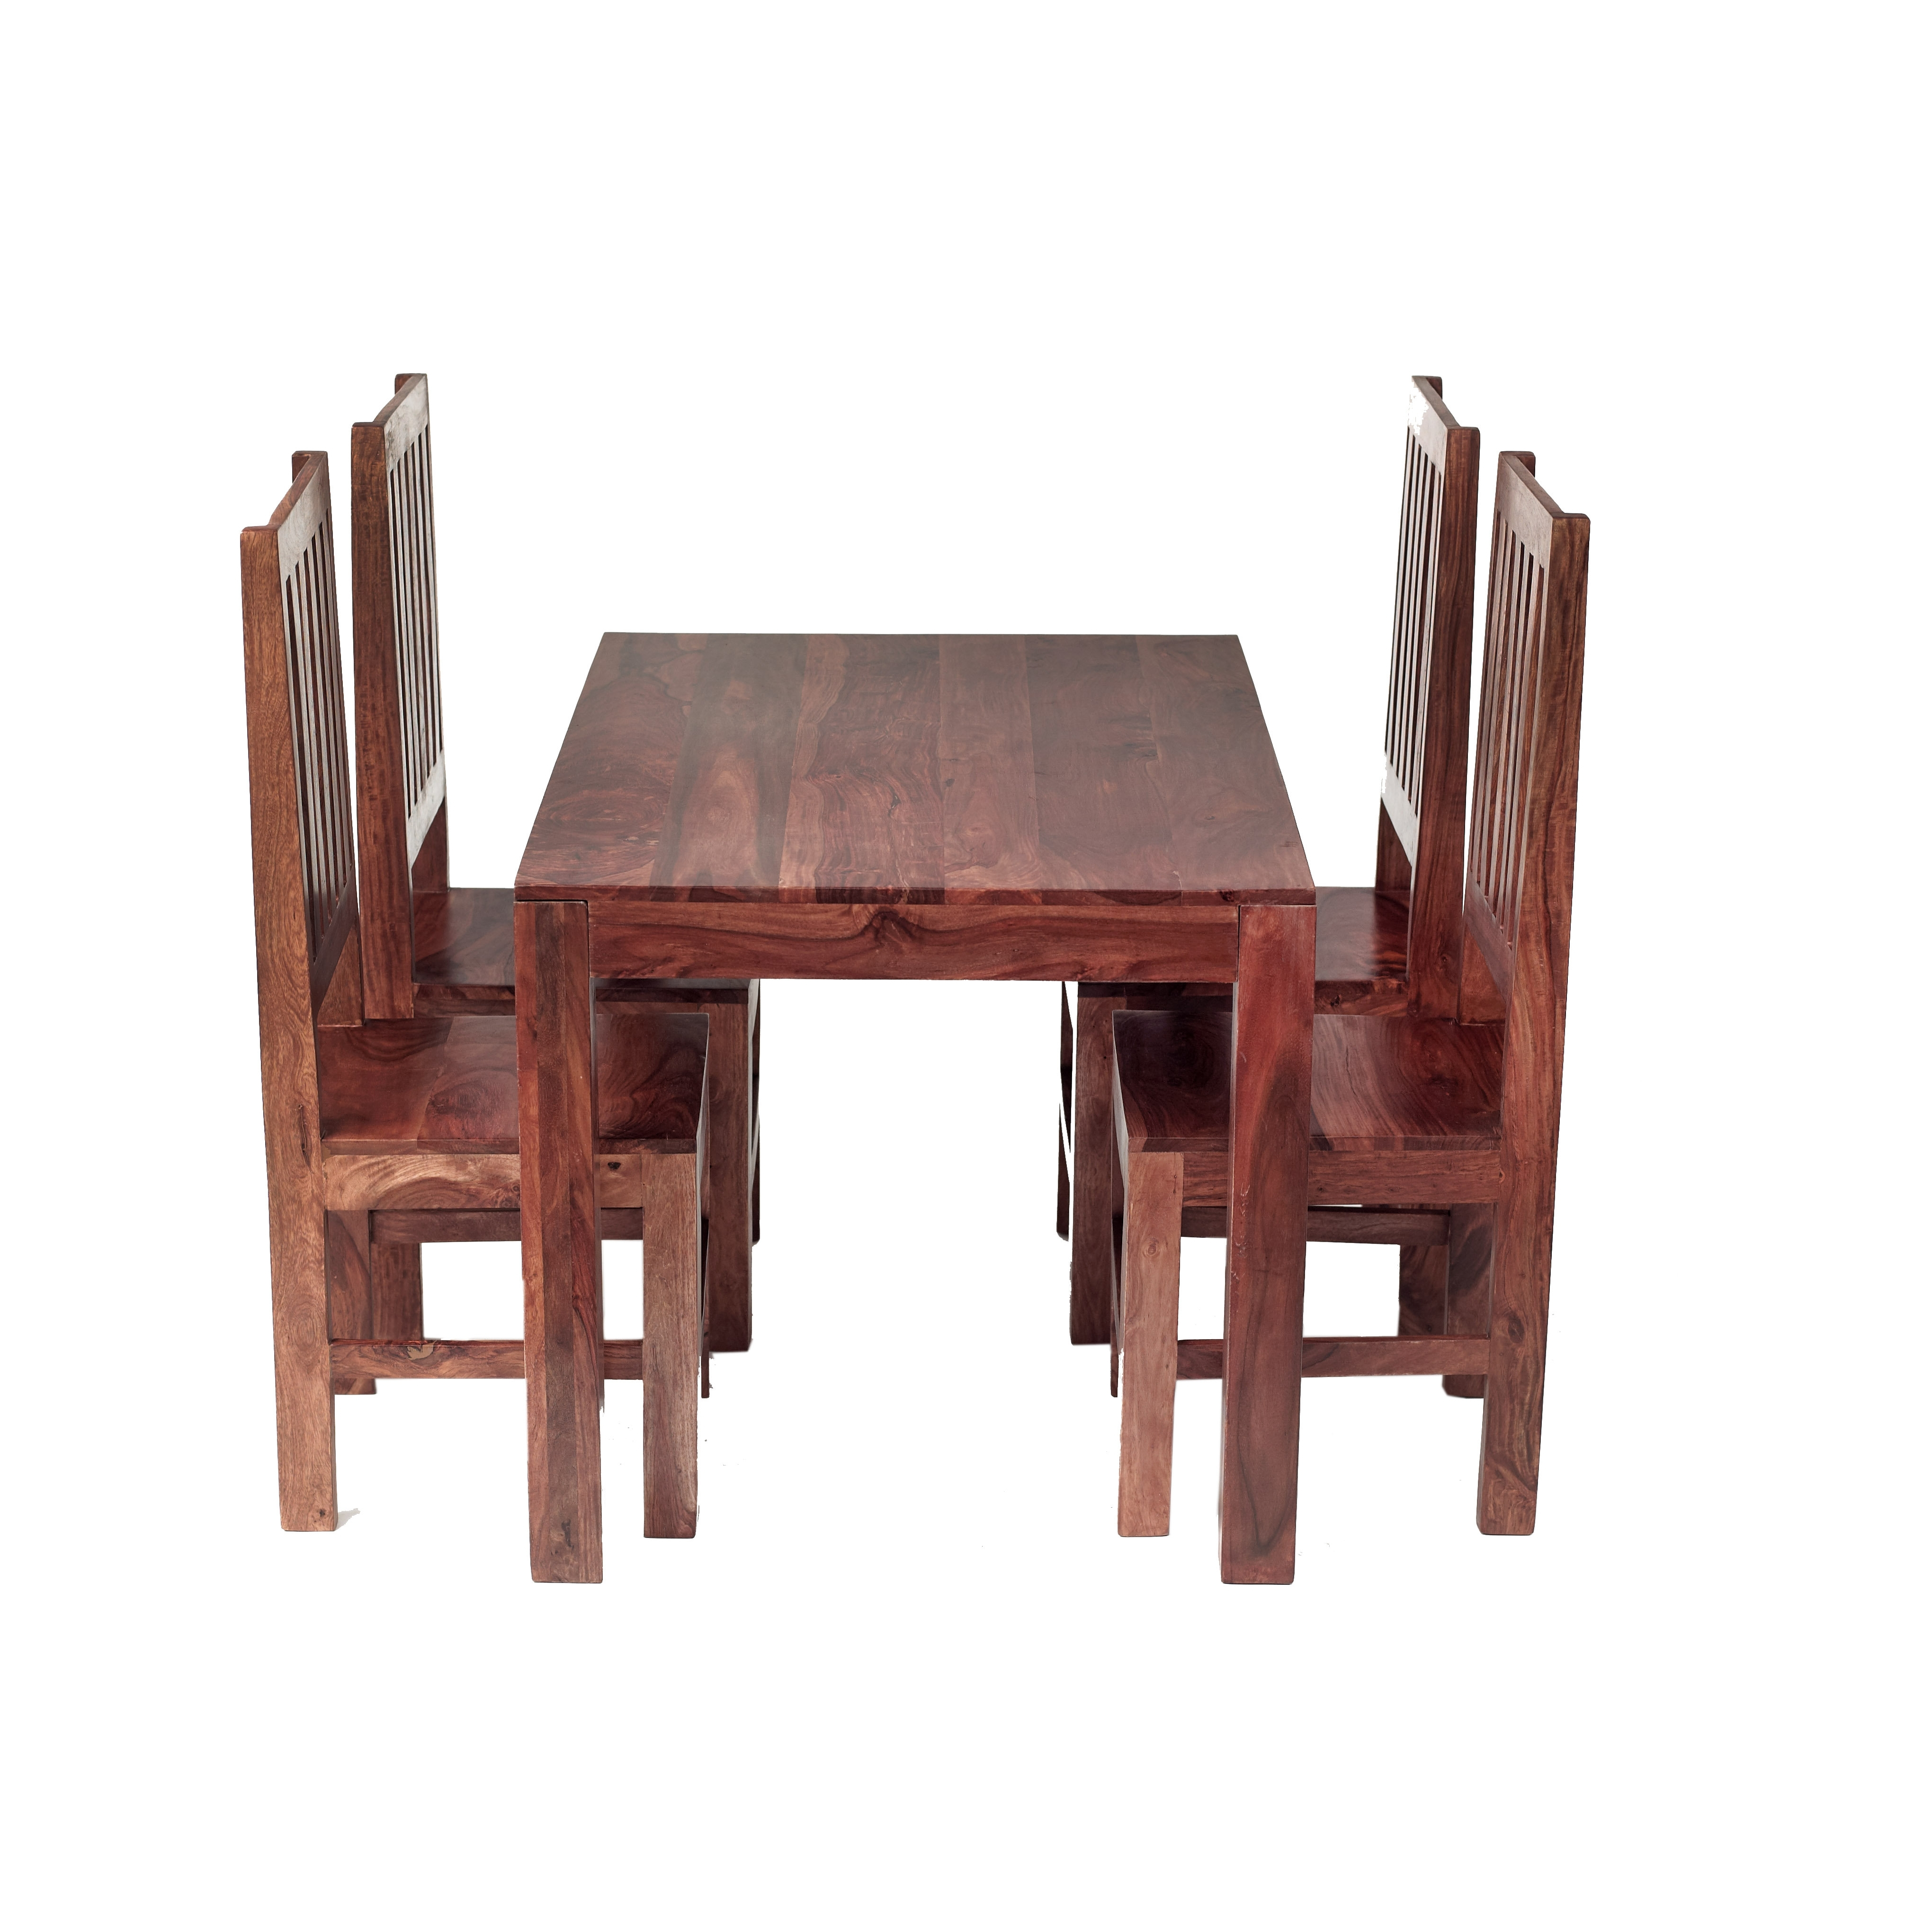 Widely Used Prestington Cube Sheesham Dining Table And 4 Chairs & Reviews Within Sheesham Dining Tables And Chairs (View 10 of 25)